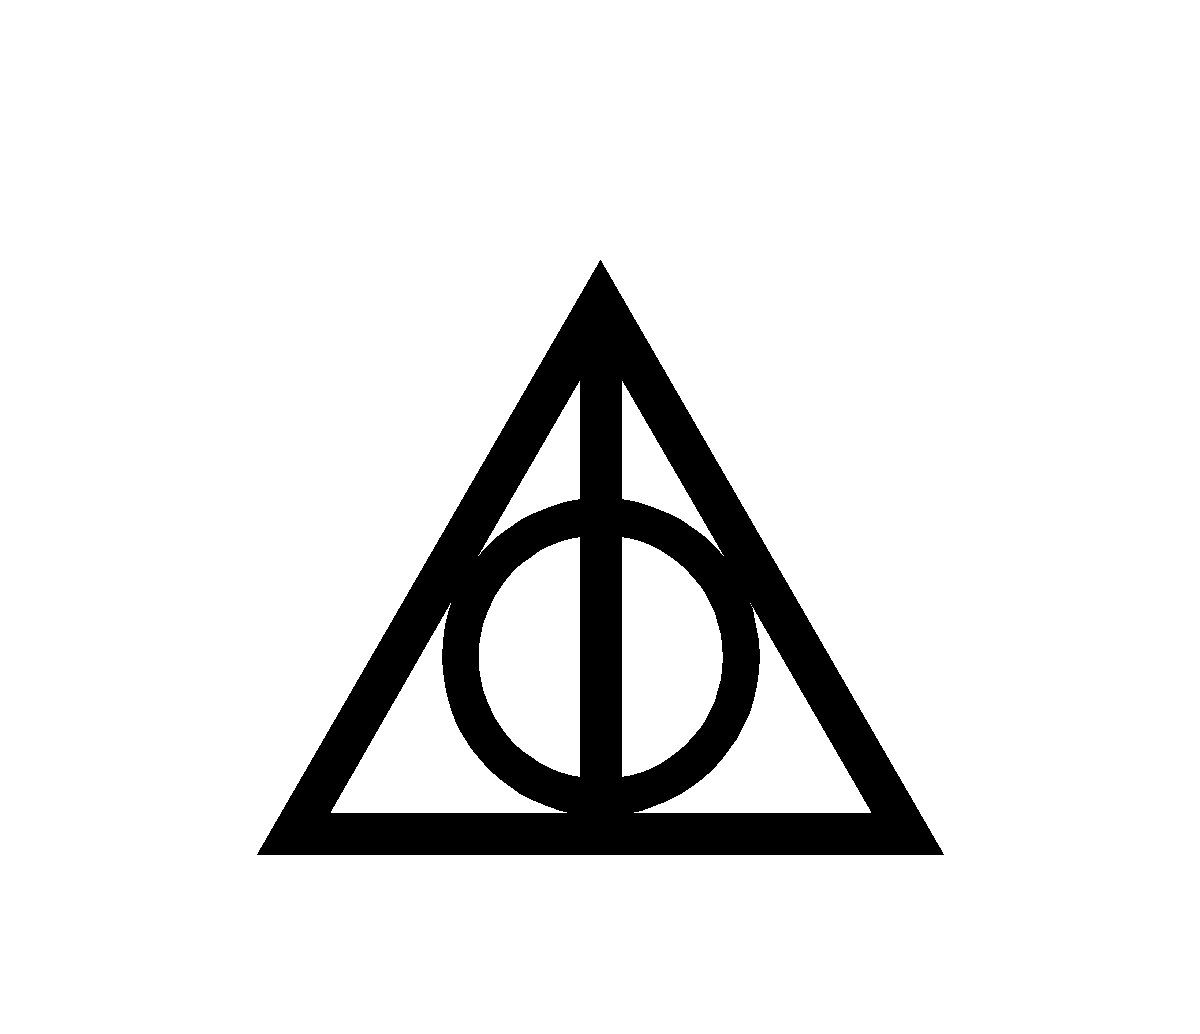 deathly hallows symbol | Potterhead | Pinterest | Deathly ...